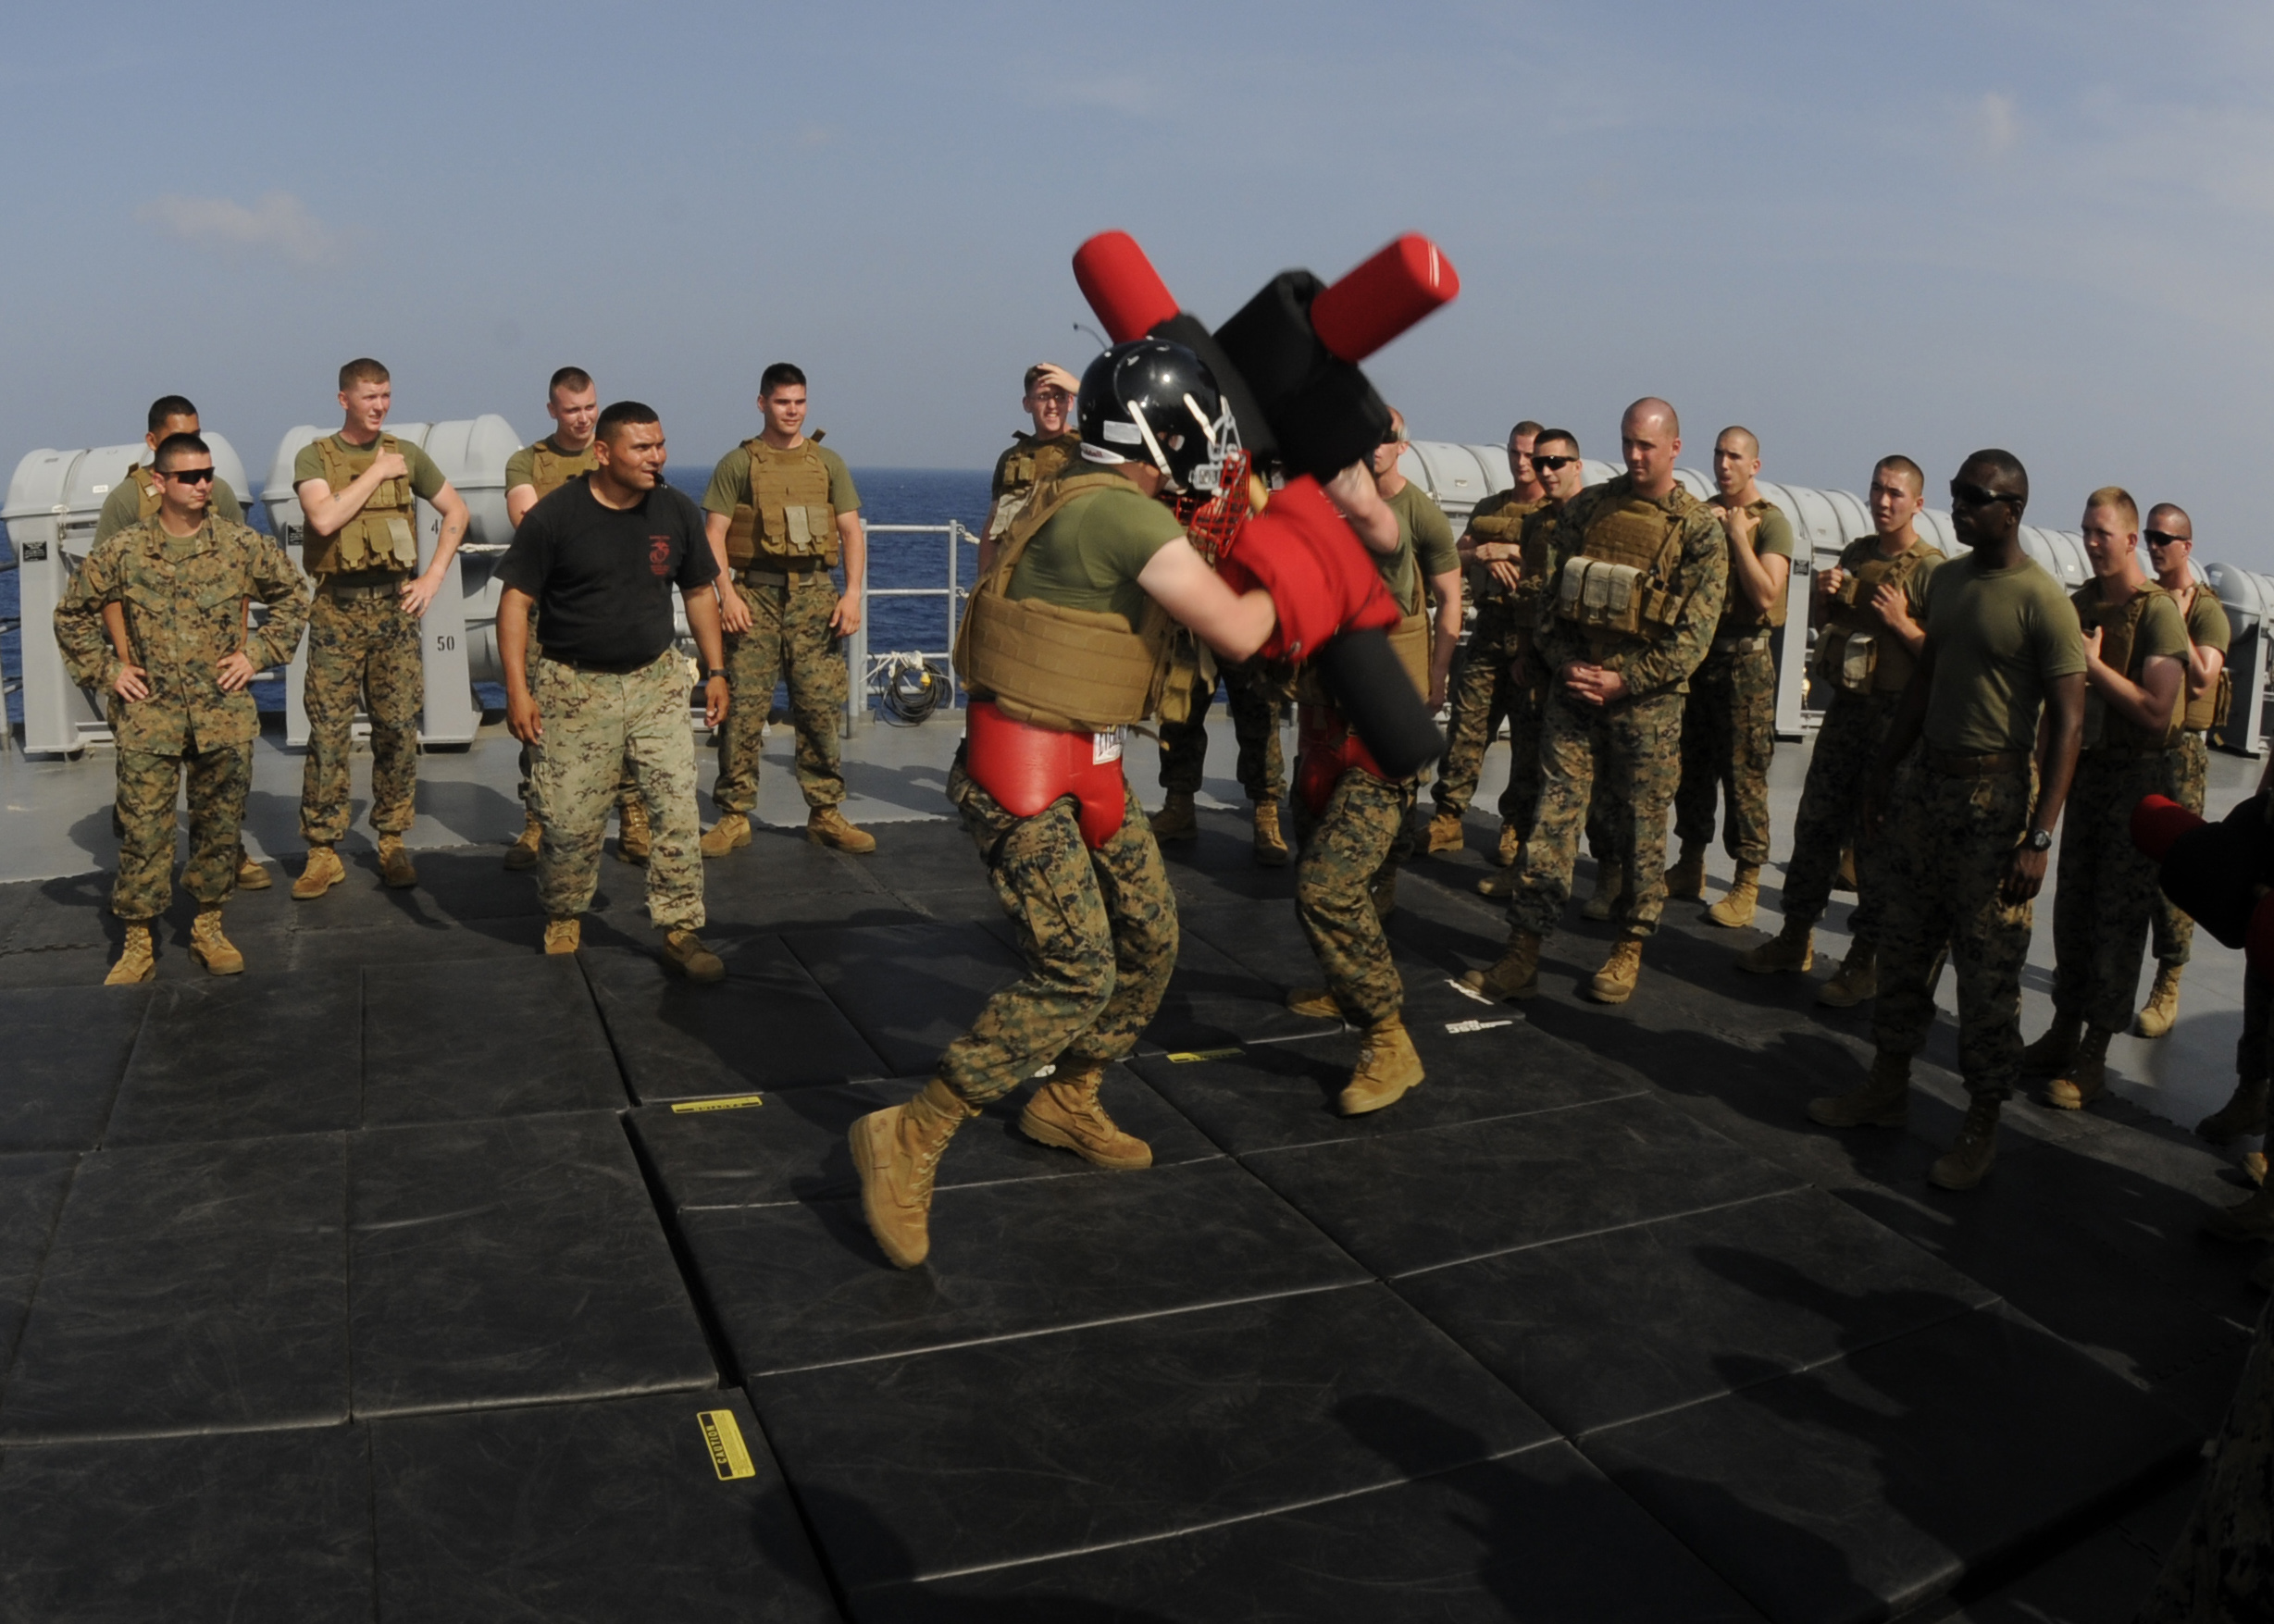 File:U.S. Marine Corps Lance Cpl. Jay Fisher, center left, and Lance Cpl. Thomas LaPointe ...